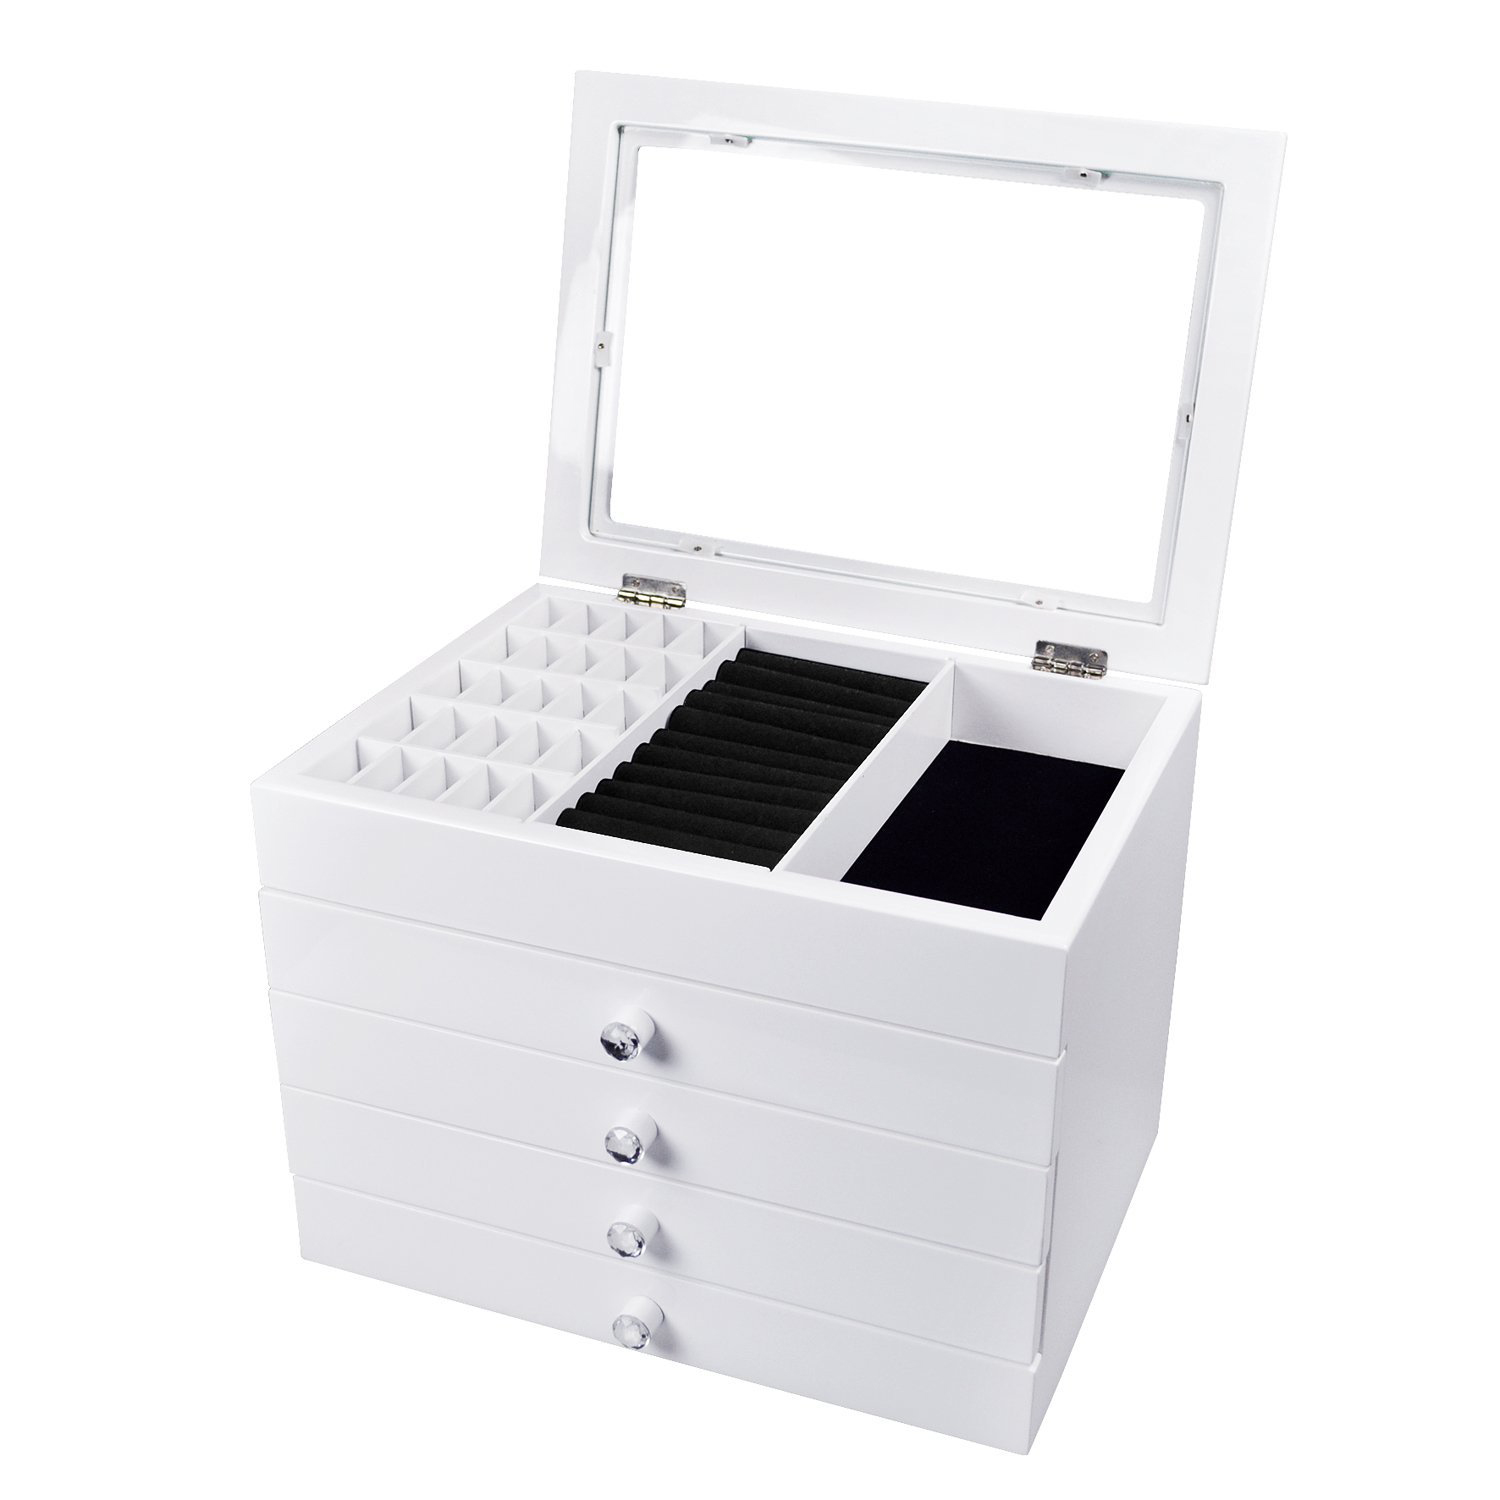 Tall White Countertop Jewelry Box with Drawers & Glass Lid